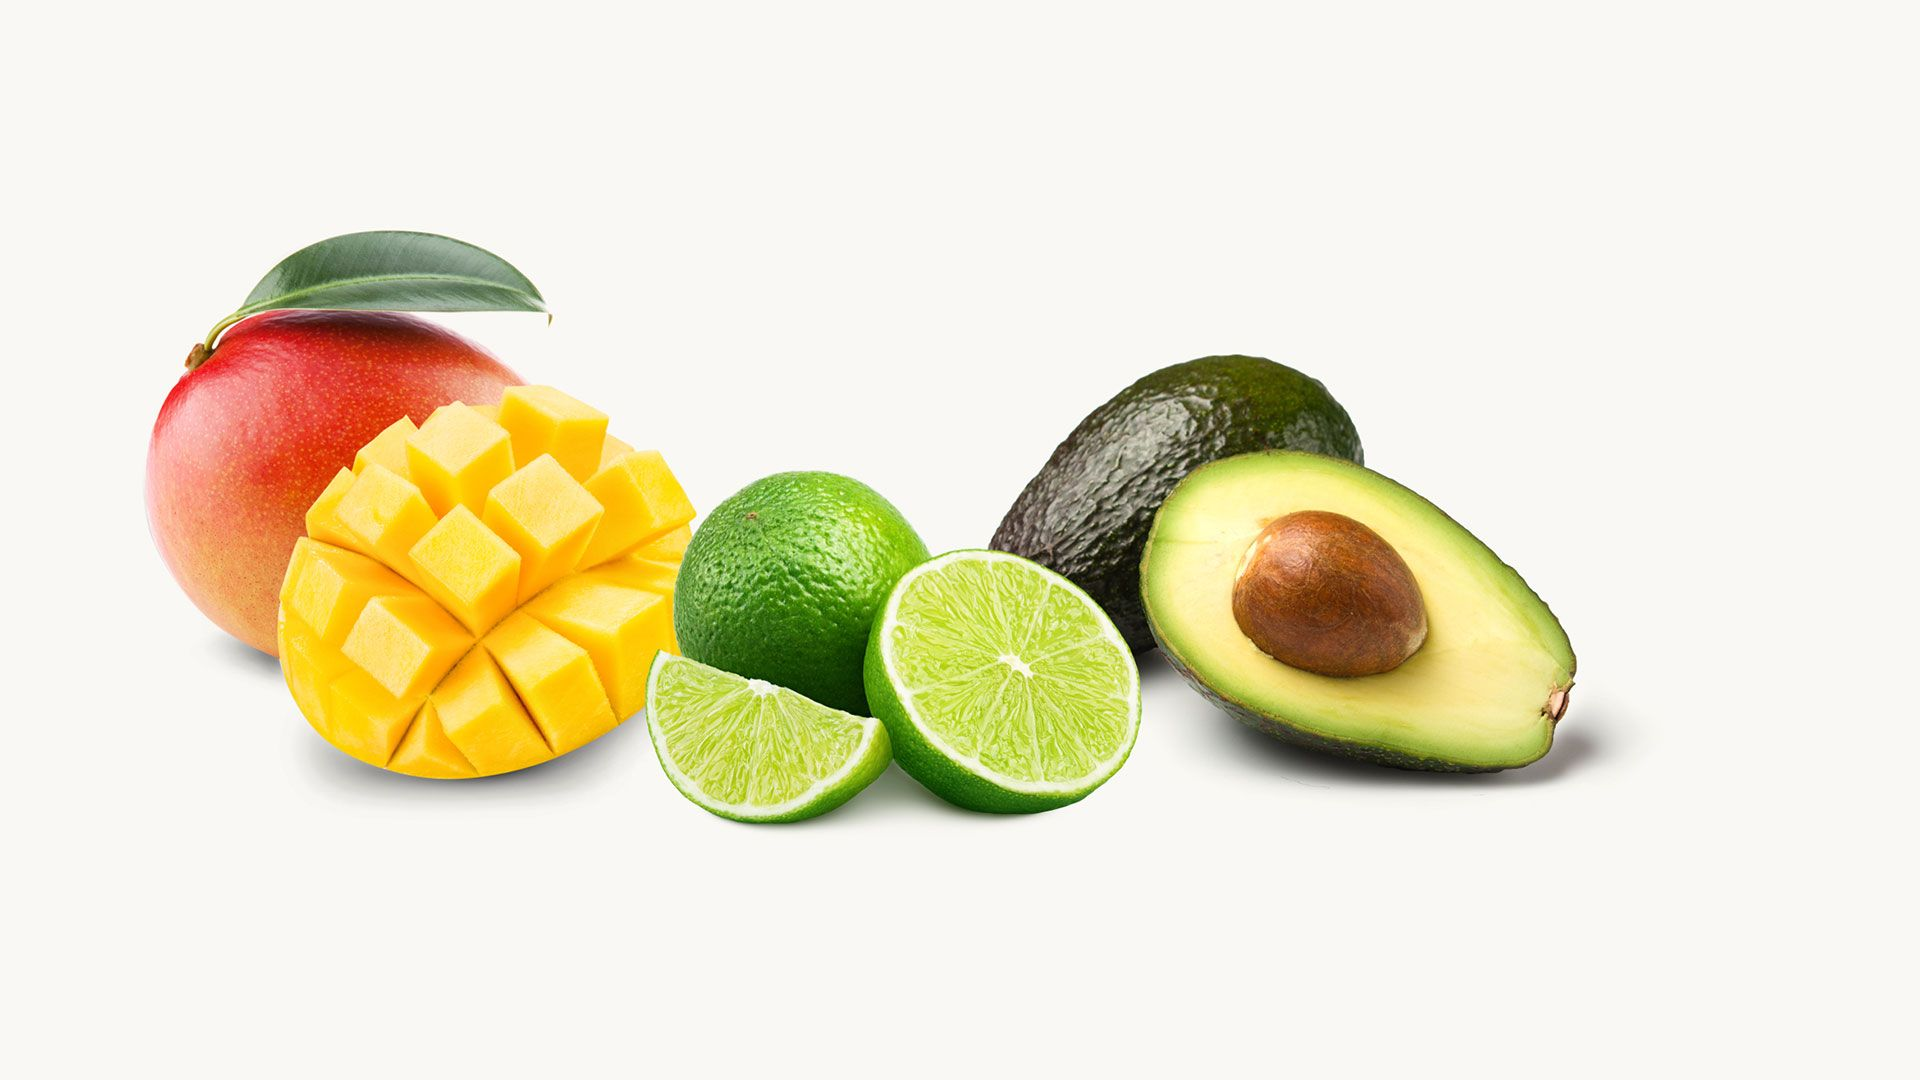 Frutos Tropicales Europe is your specialist in Tropical Fruits